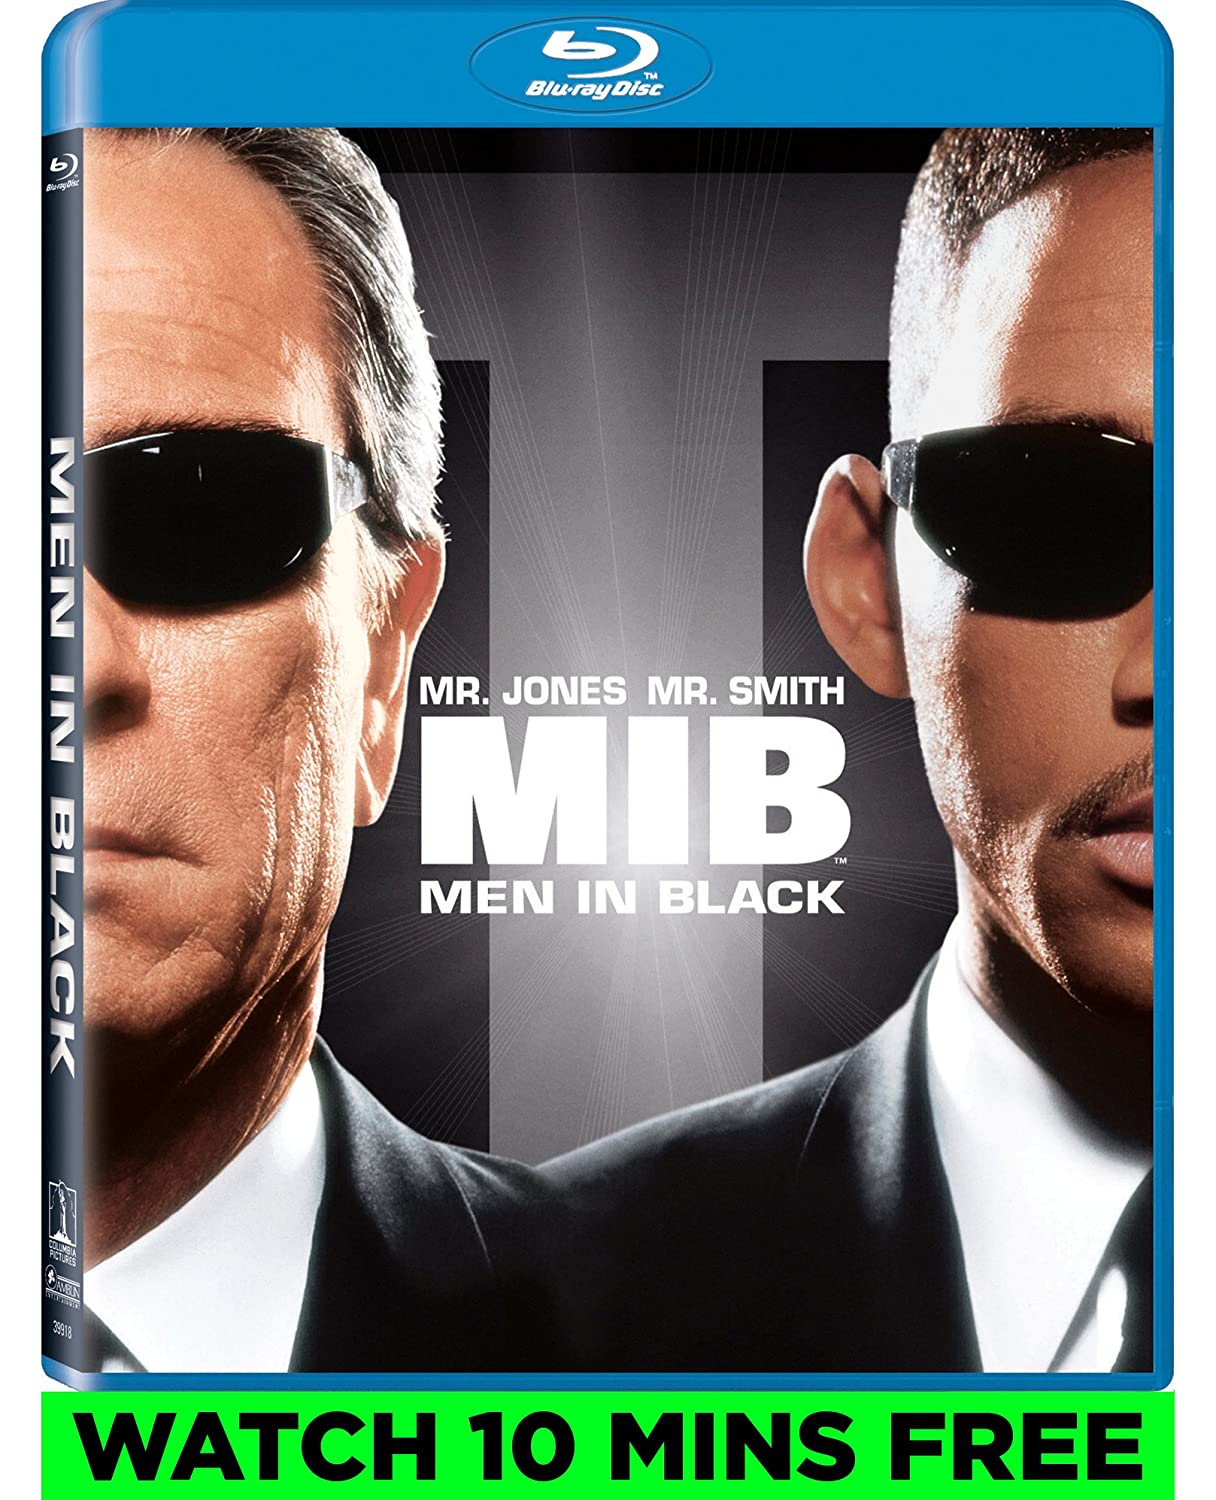 amazon com men in black ultraviolet digital copy blu ray amazon com men in black ultraviolet digital copy blu ray tommy lee jones will smith linda fiorentino vincent d onofrio rip torn